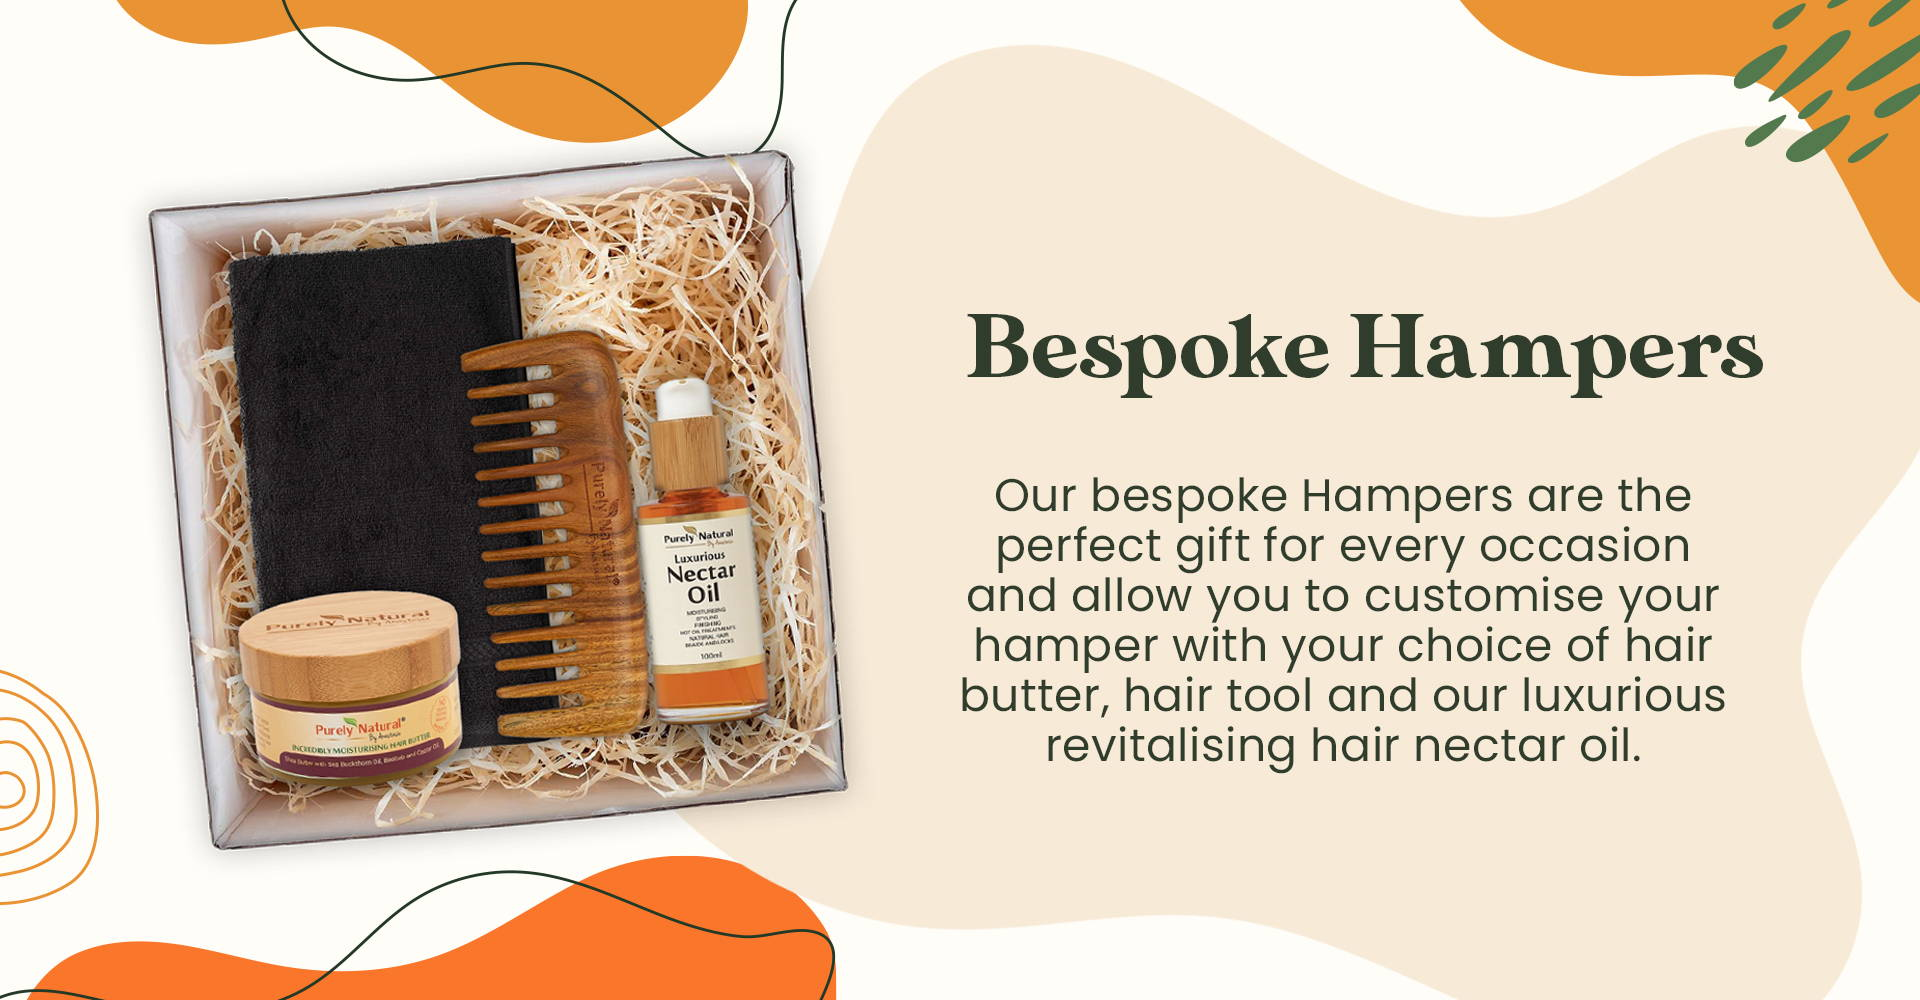 Bespoke Hampers from Purely Natural by Anastasia